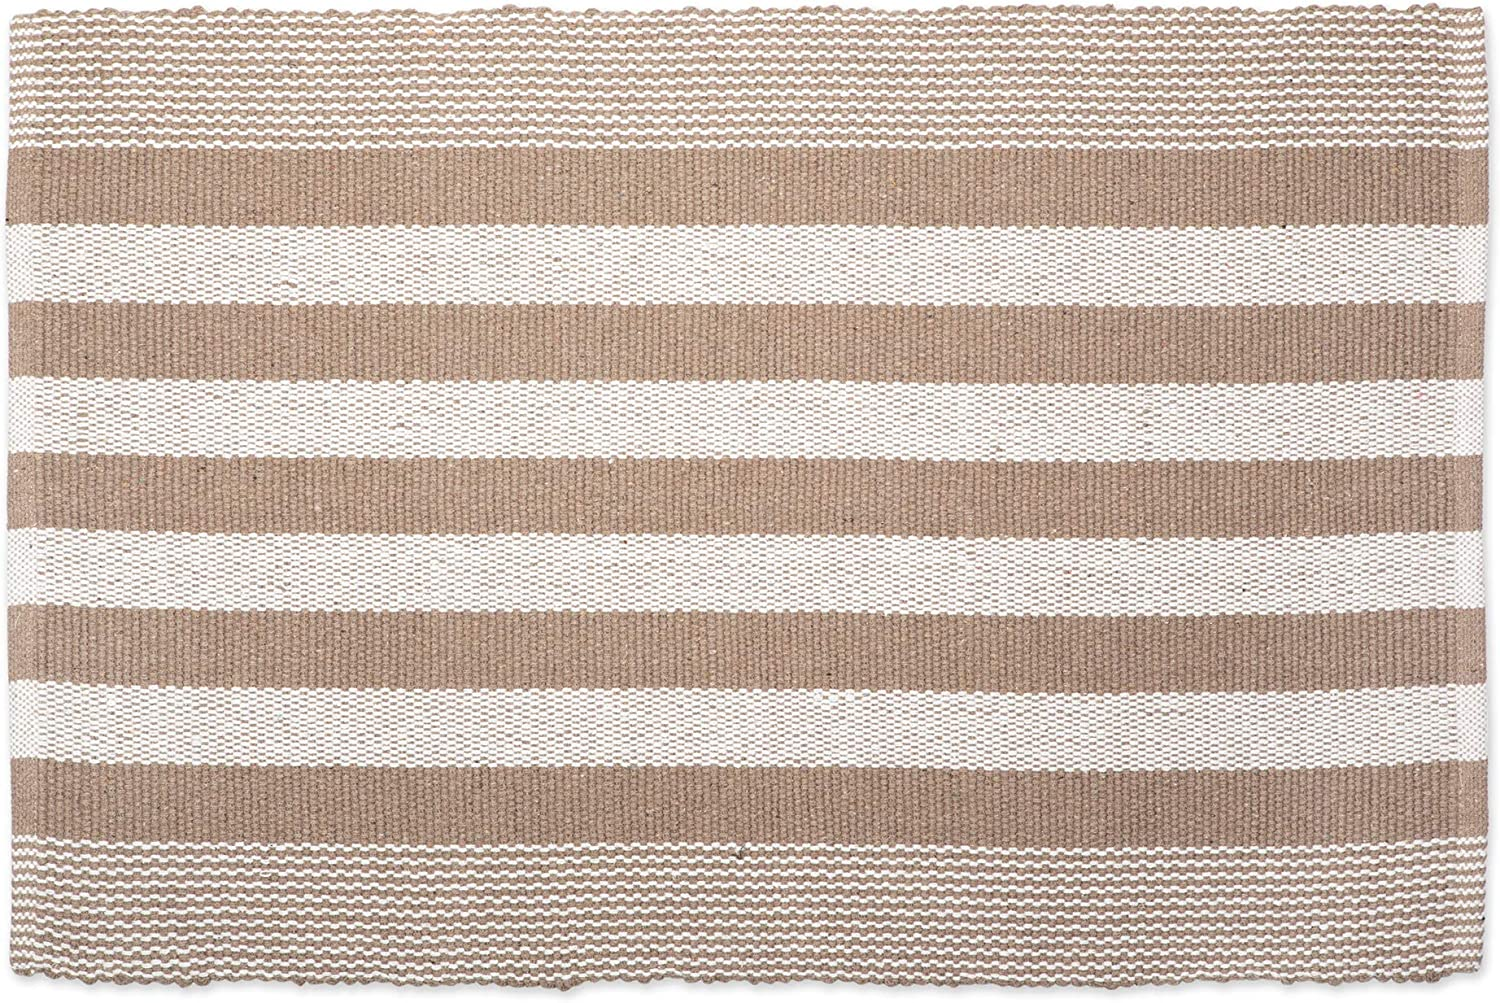 DII Contemporary Reversible Machine Washable Recycled Yarn Area Rug for Bedroom, Living Room, and Kitchen, 2'x3', Cabana Stripe Stone